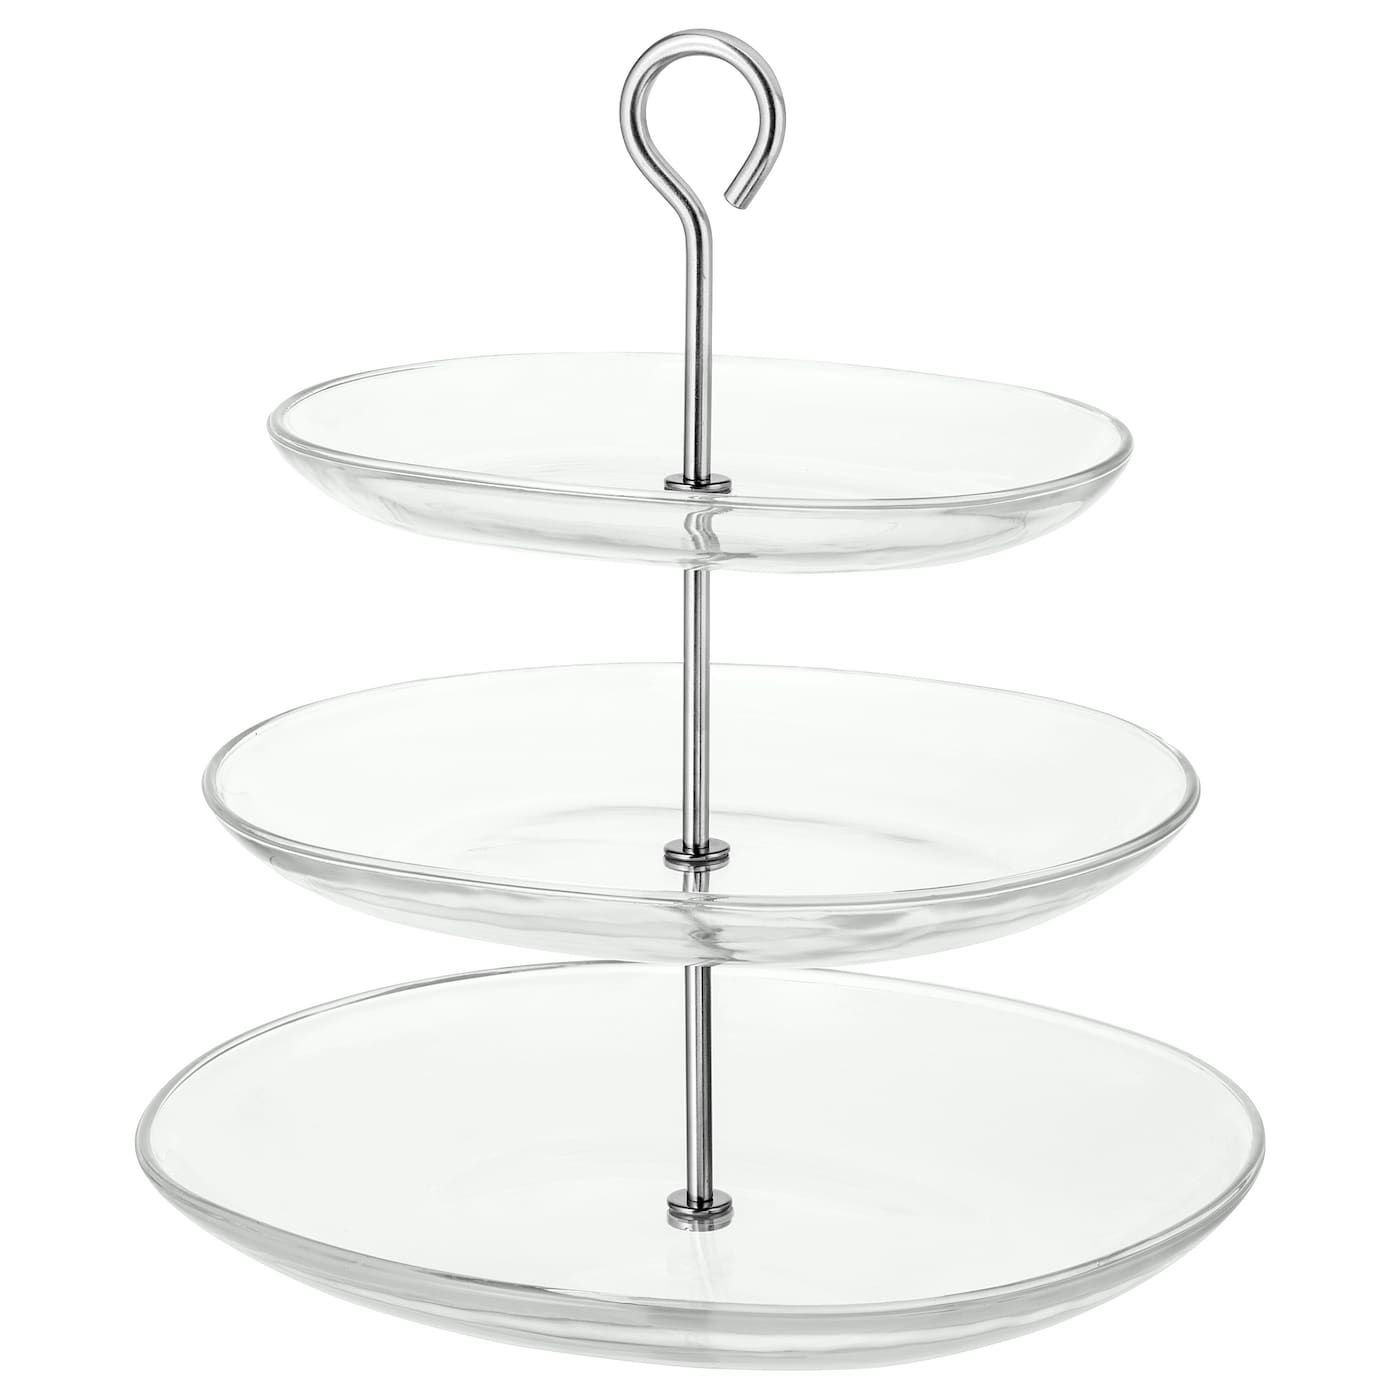 Kvittera Serving Stand 3 Tiers Clear Glass Stainless Steel Ikea Serving Stand Serving Plates Clear Glass